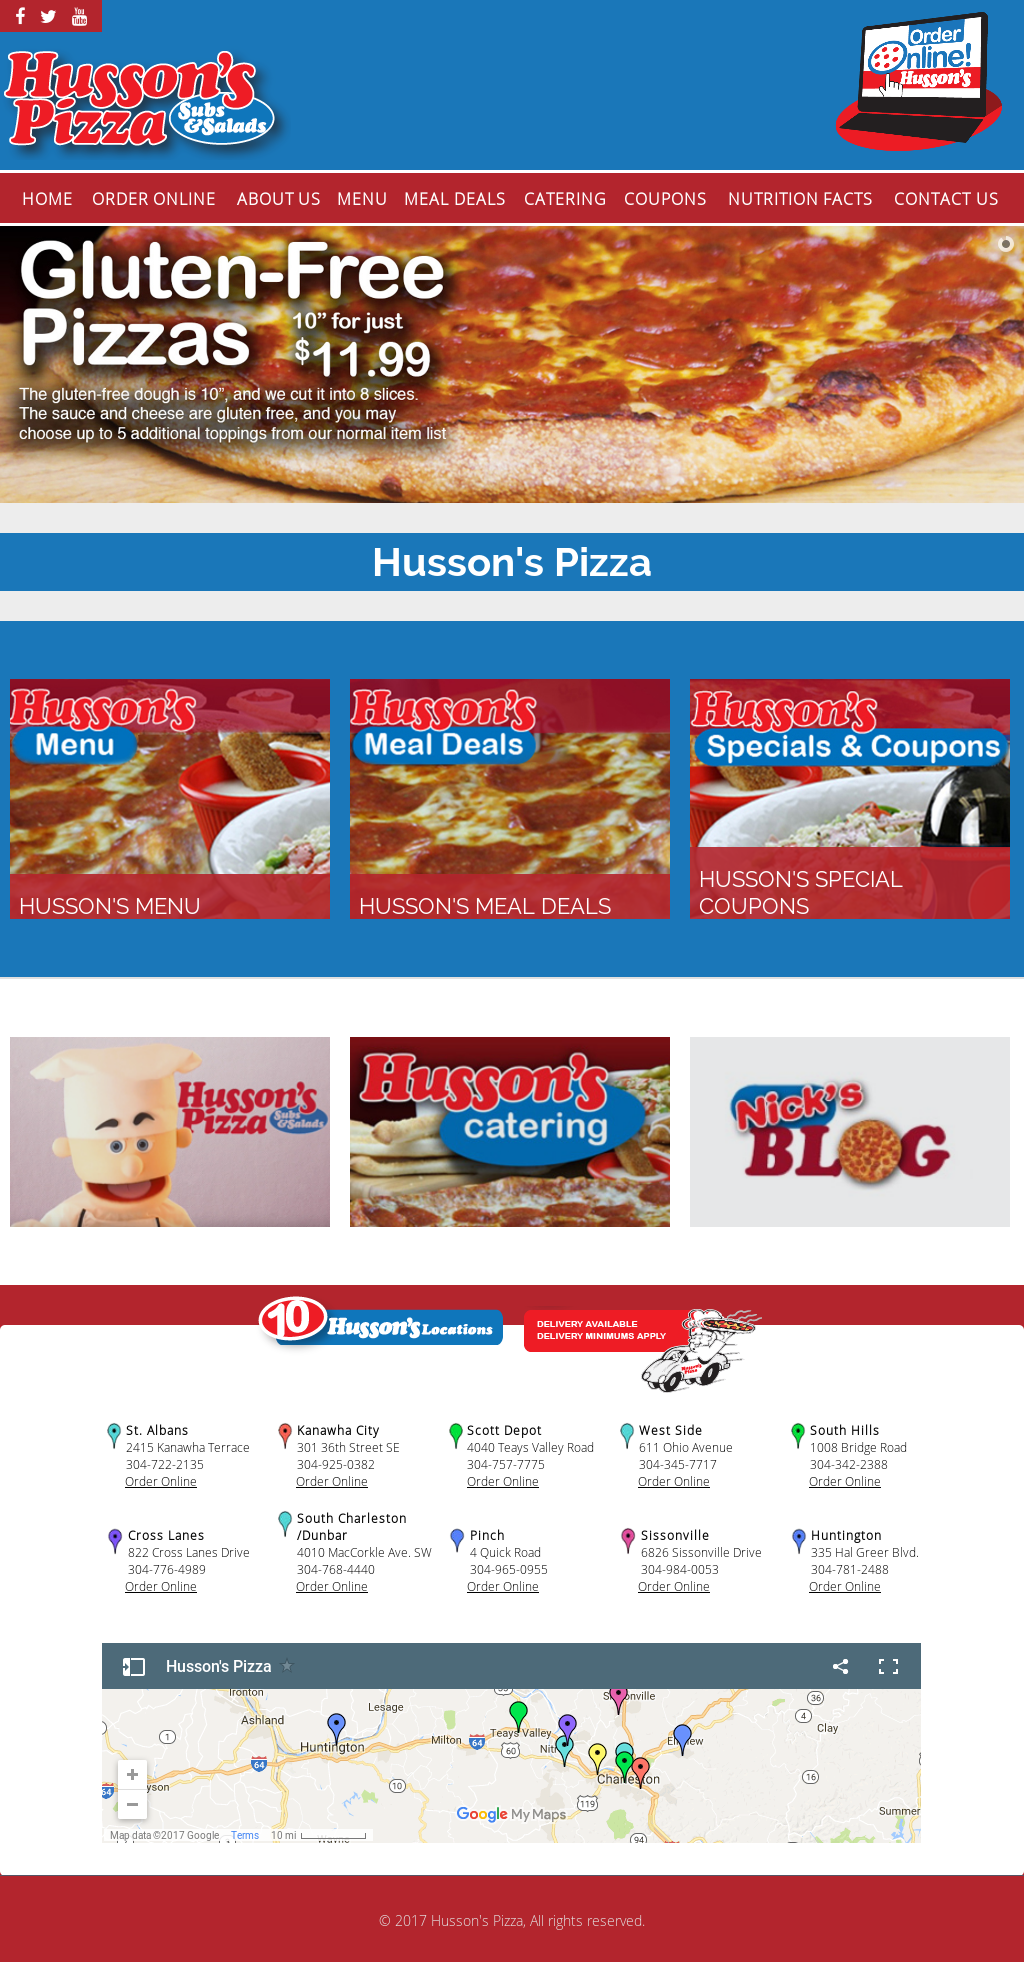 Husson's Pizza Competitors, Revenue and Employees - Owler